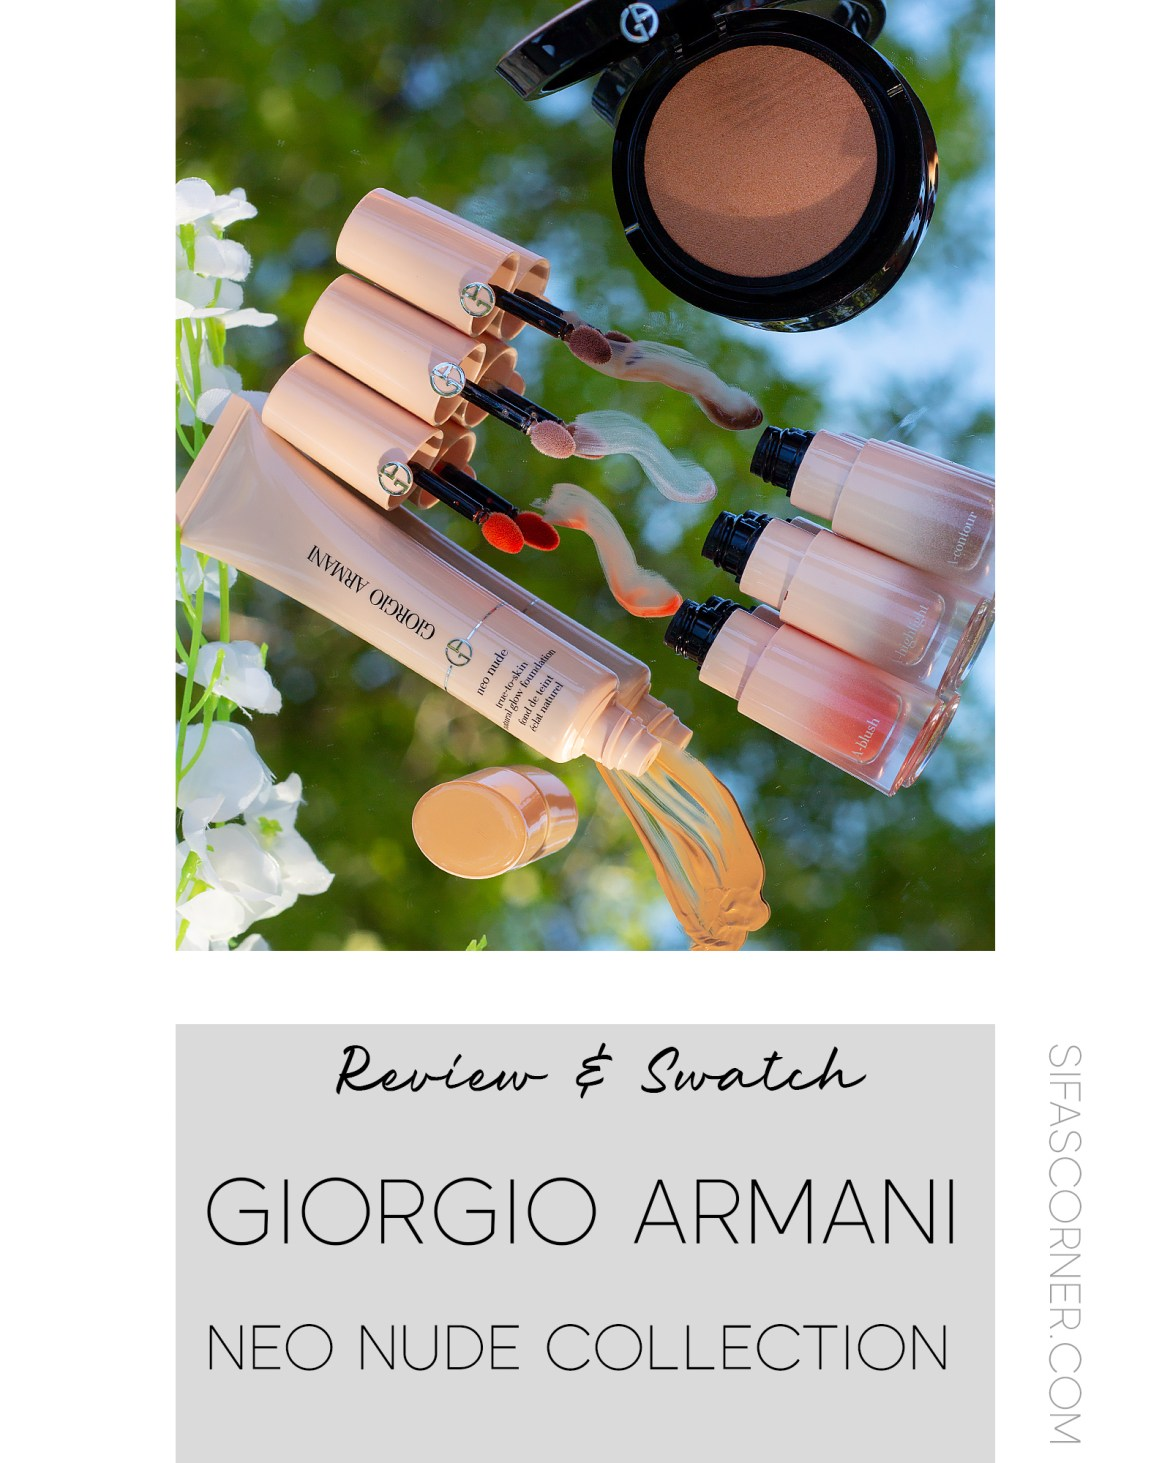 Giorgio Armani Neonude collection Review